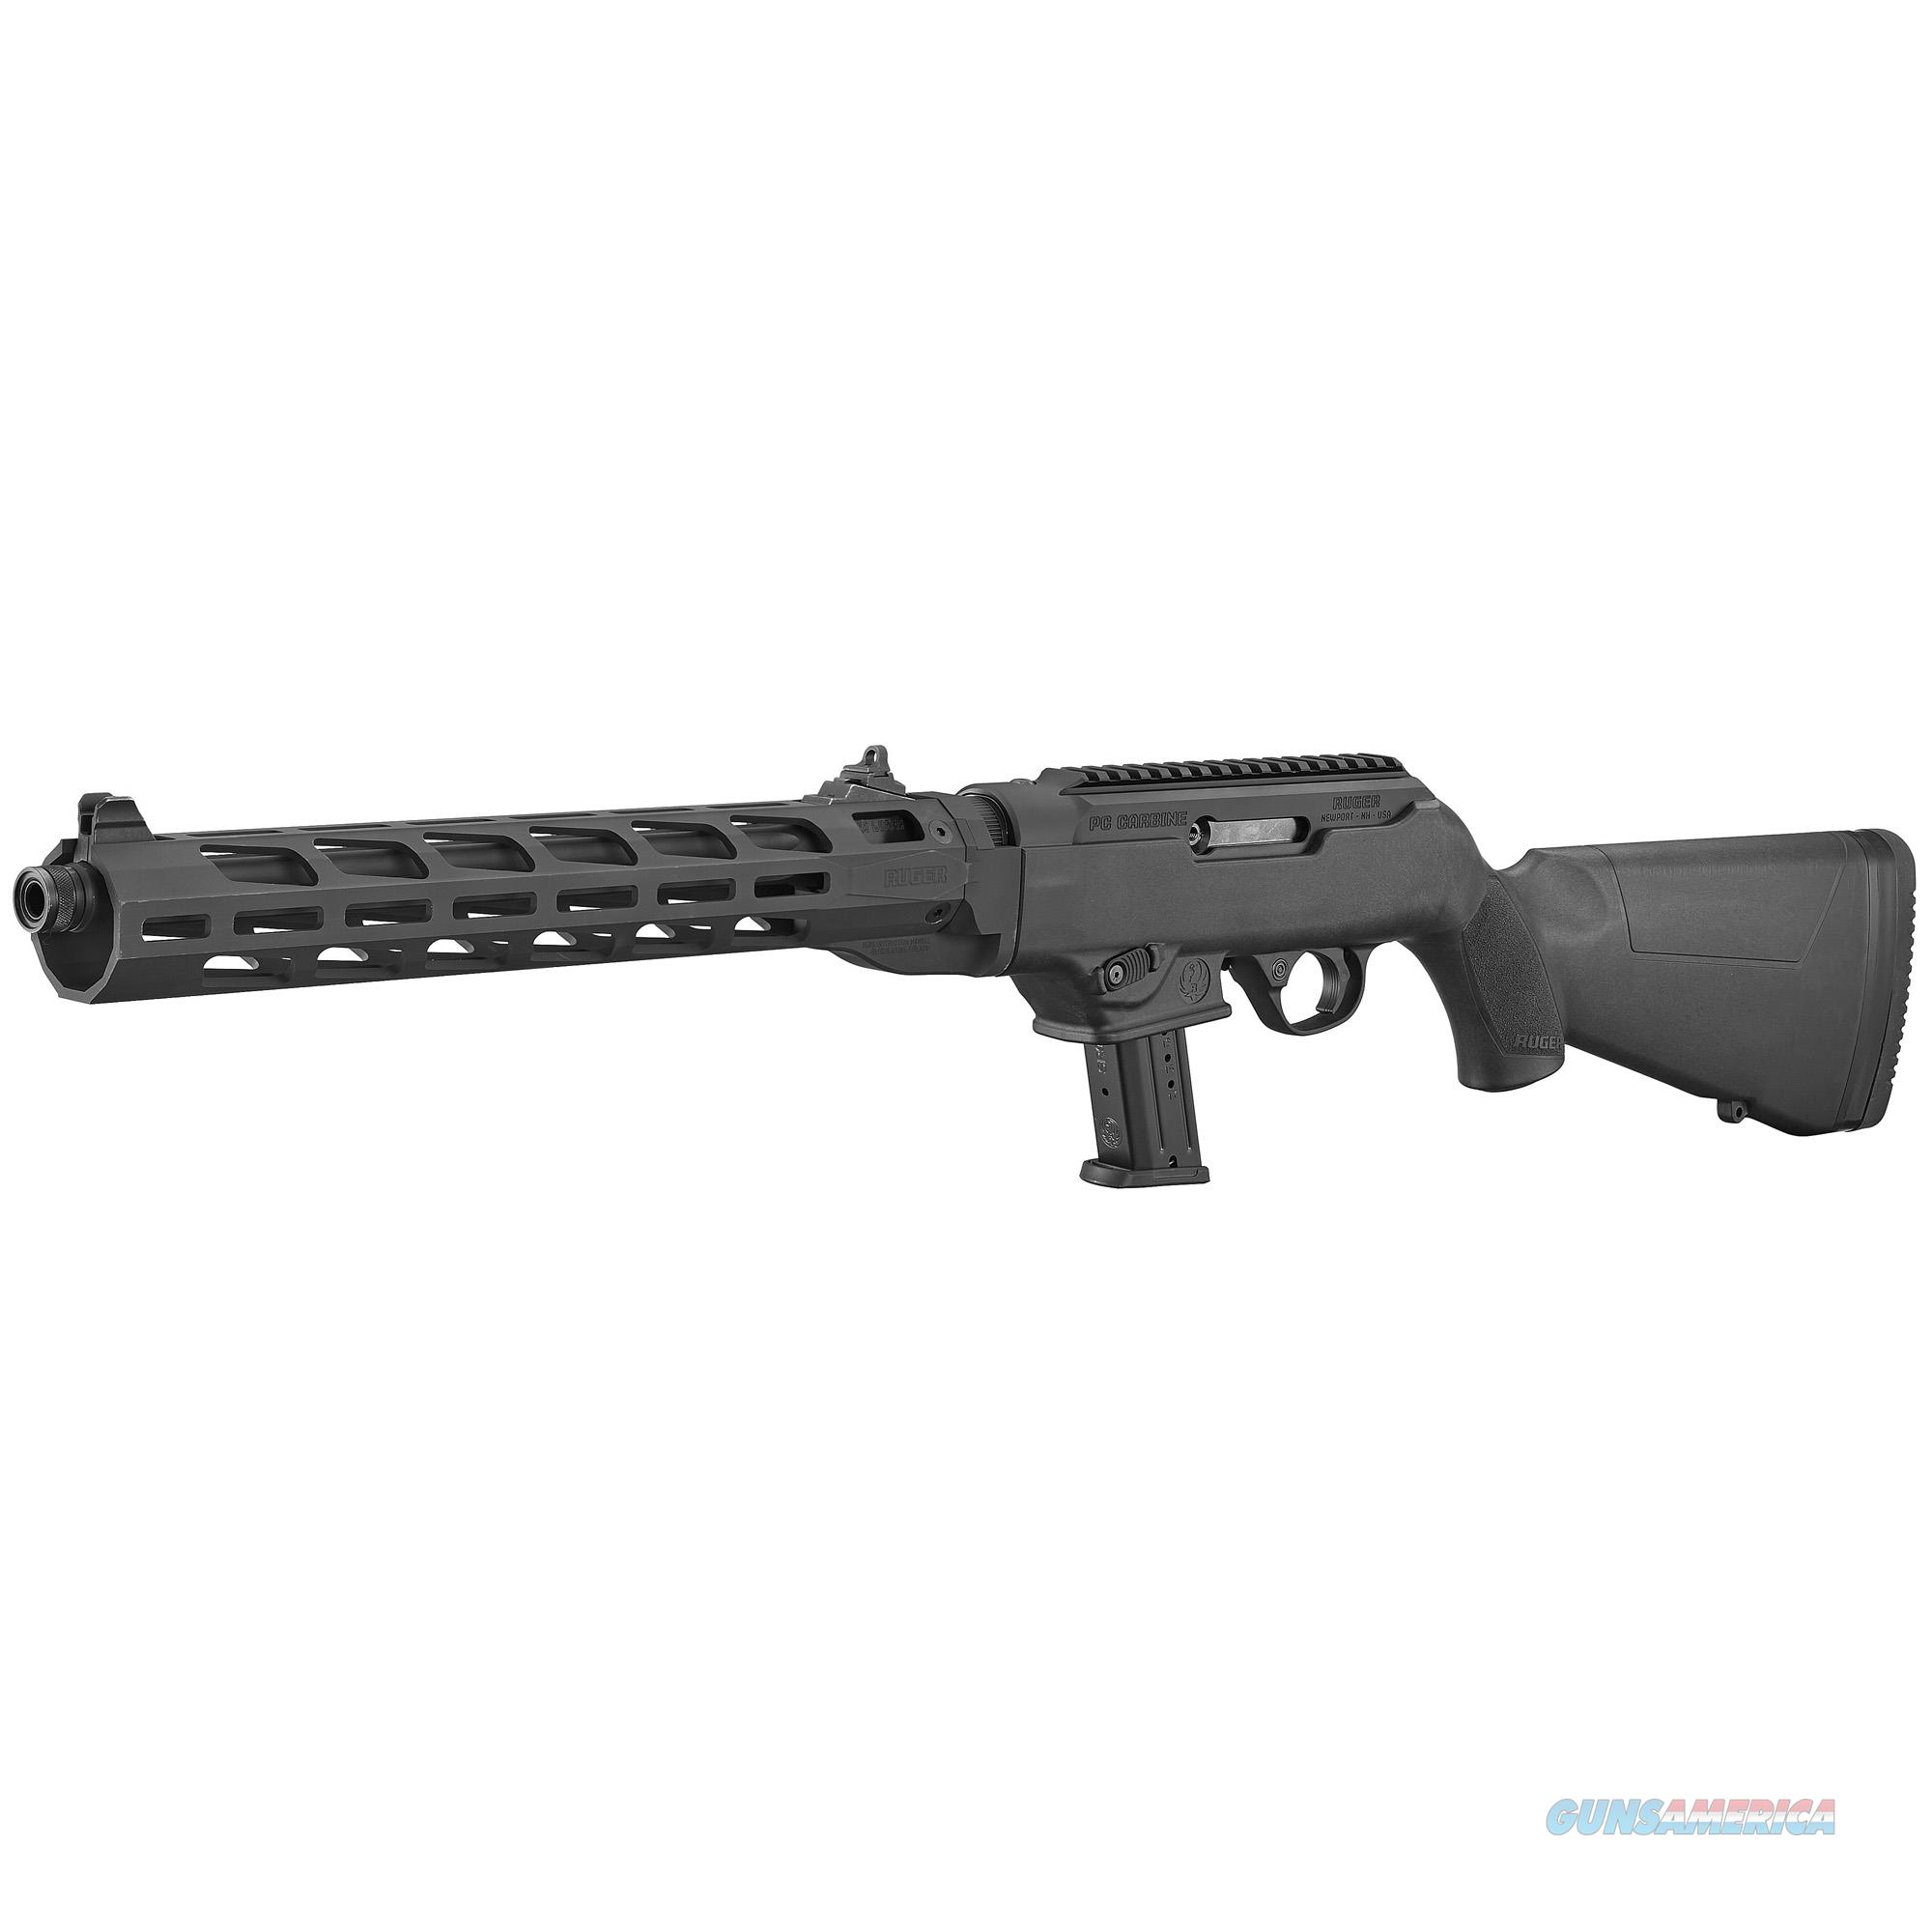 "Ruger PC Carbine 9mm 16.12"" 17+1 Takedown - New in Box!  Guns > Rifles > Ruger Rifles > PC Carbine"